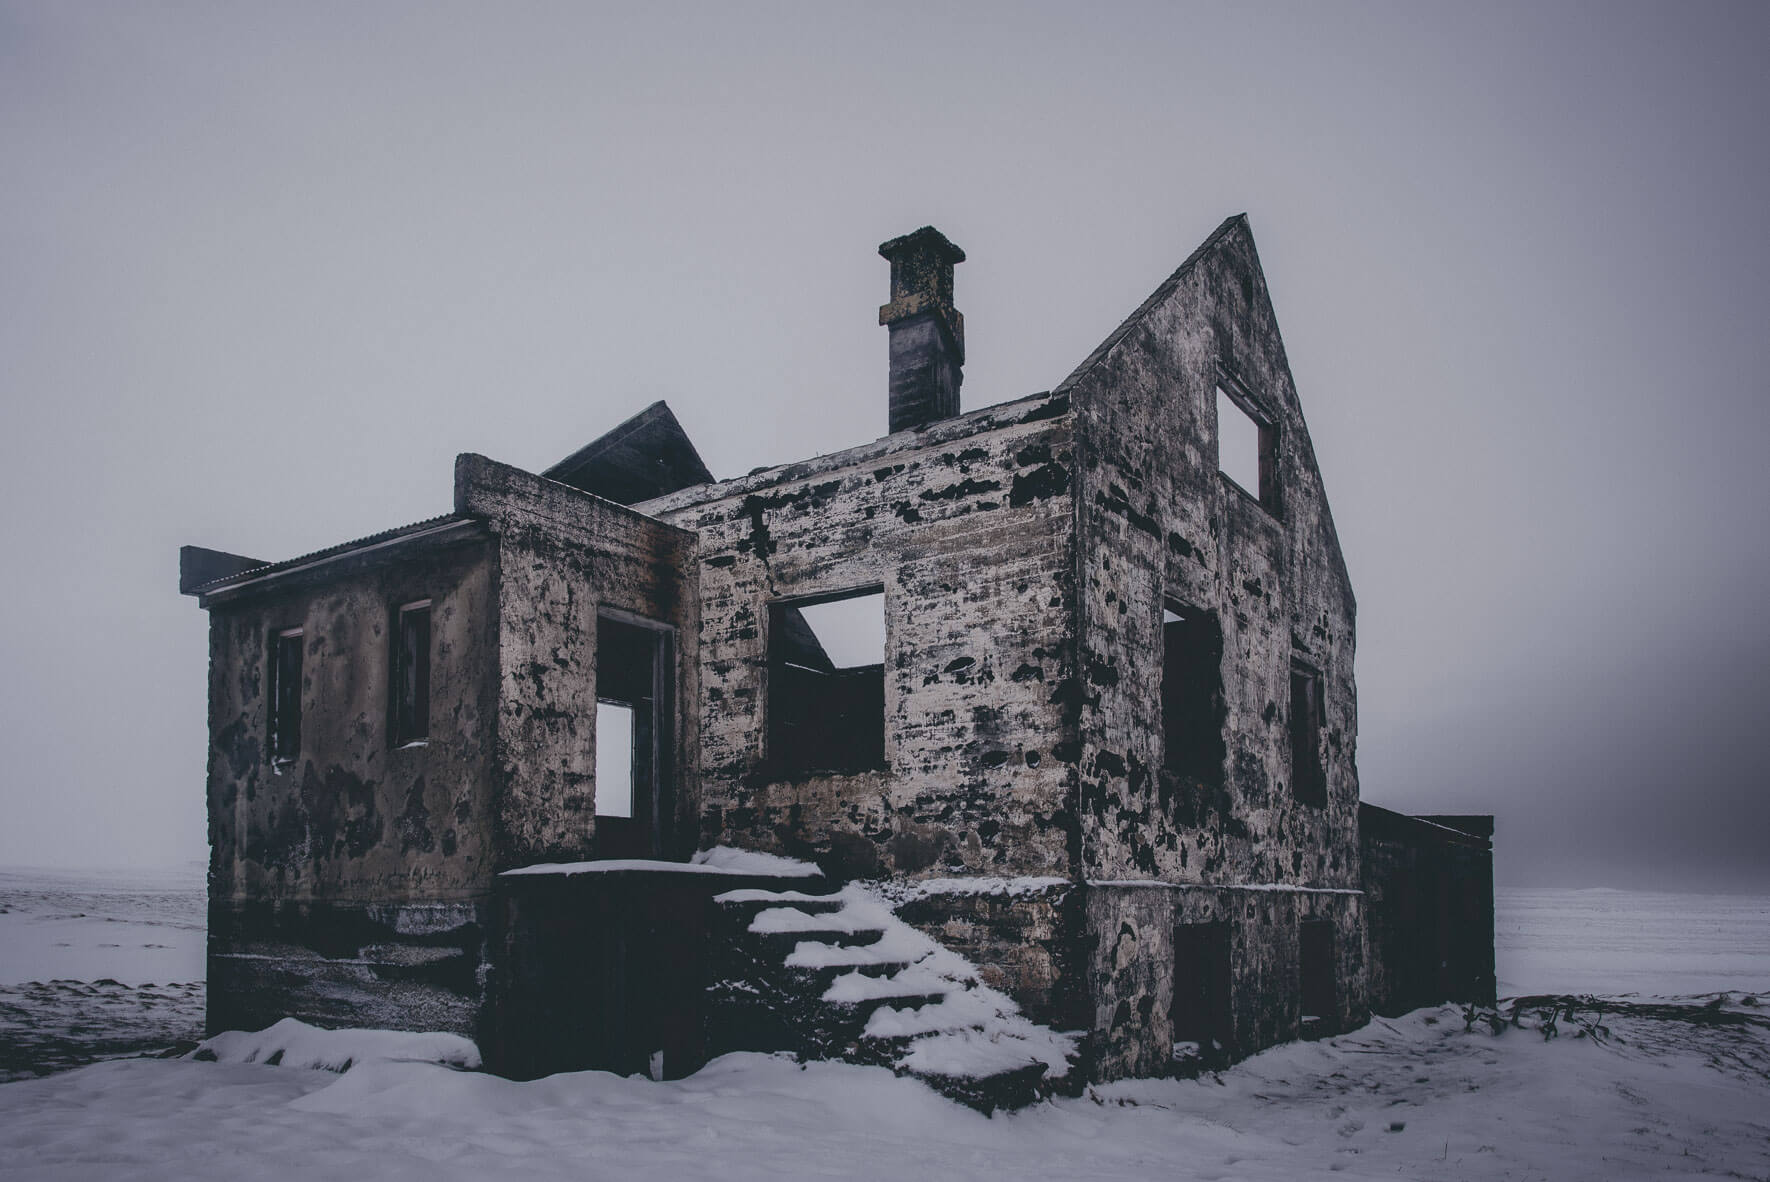 Abandoned house in winter on the Snæfellsnes peninsula, Iceland